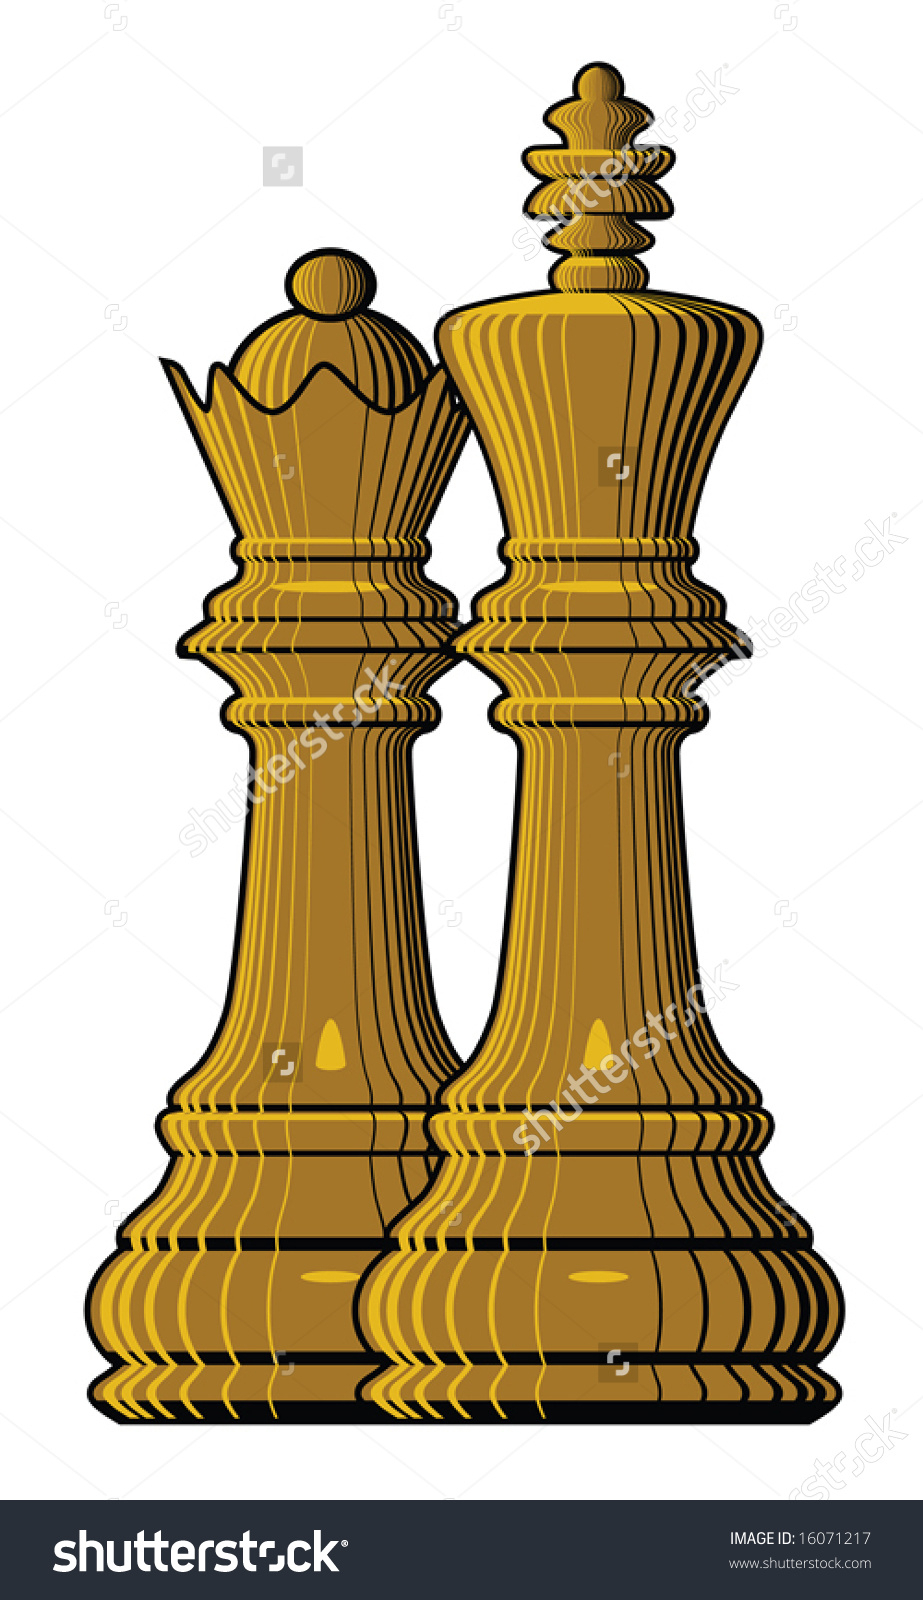 923x1600 Queen Chess Piece Drawing King Queen Chess Pieces Vector Stock